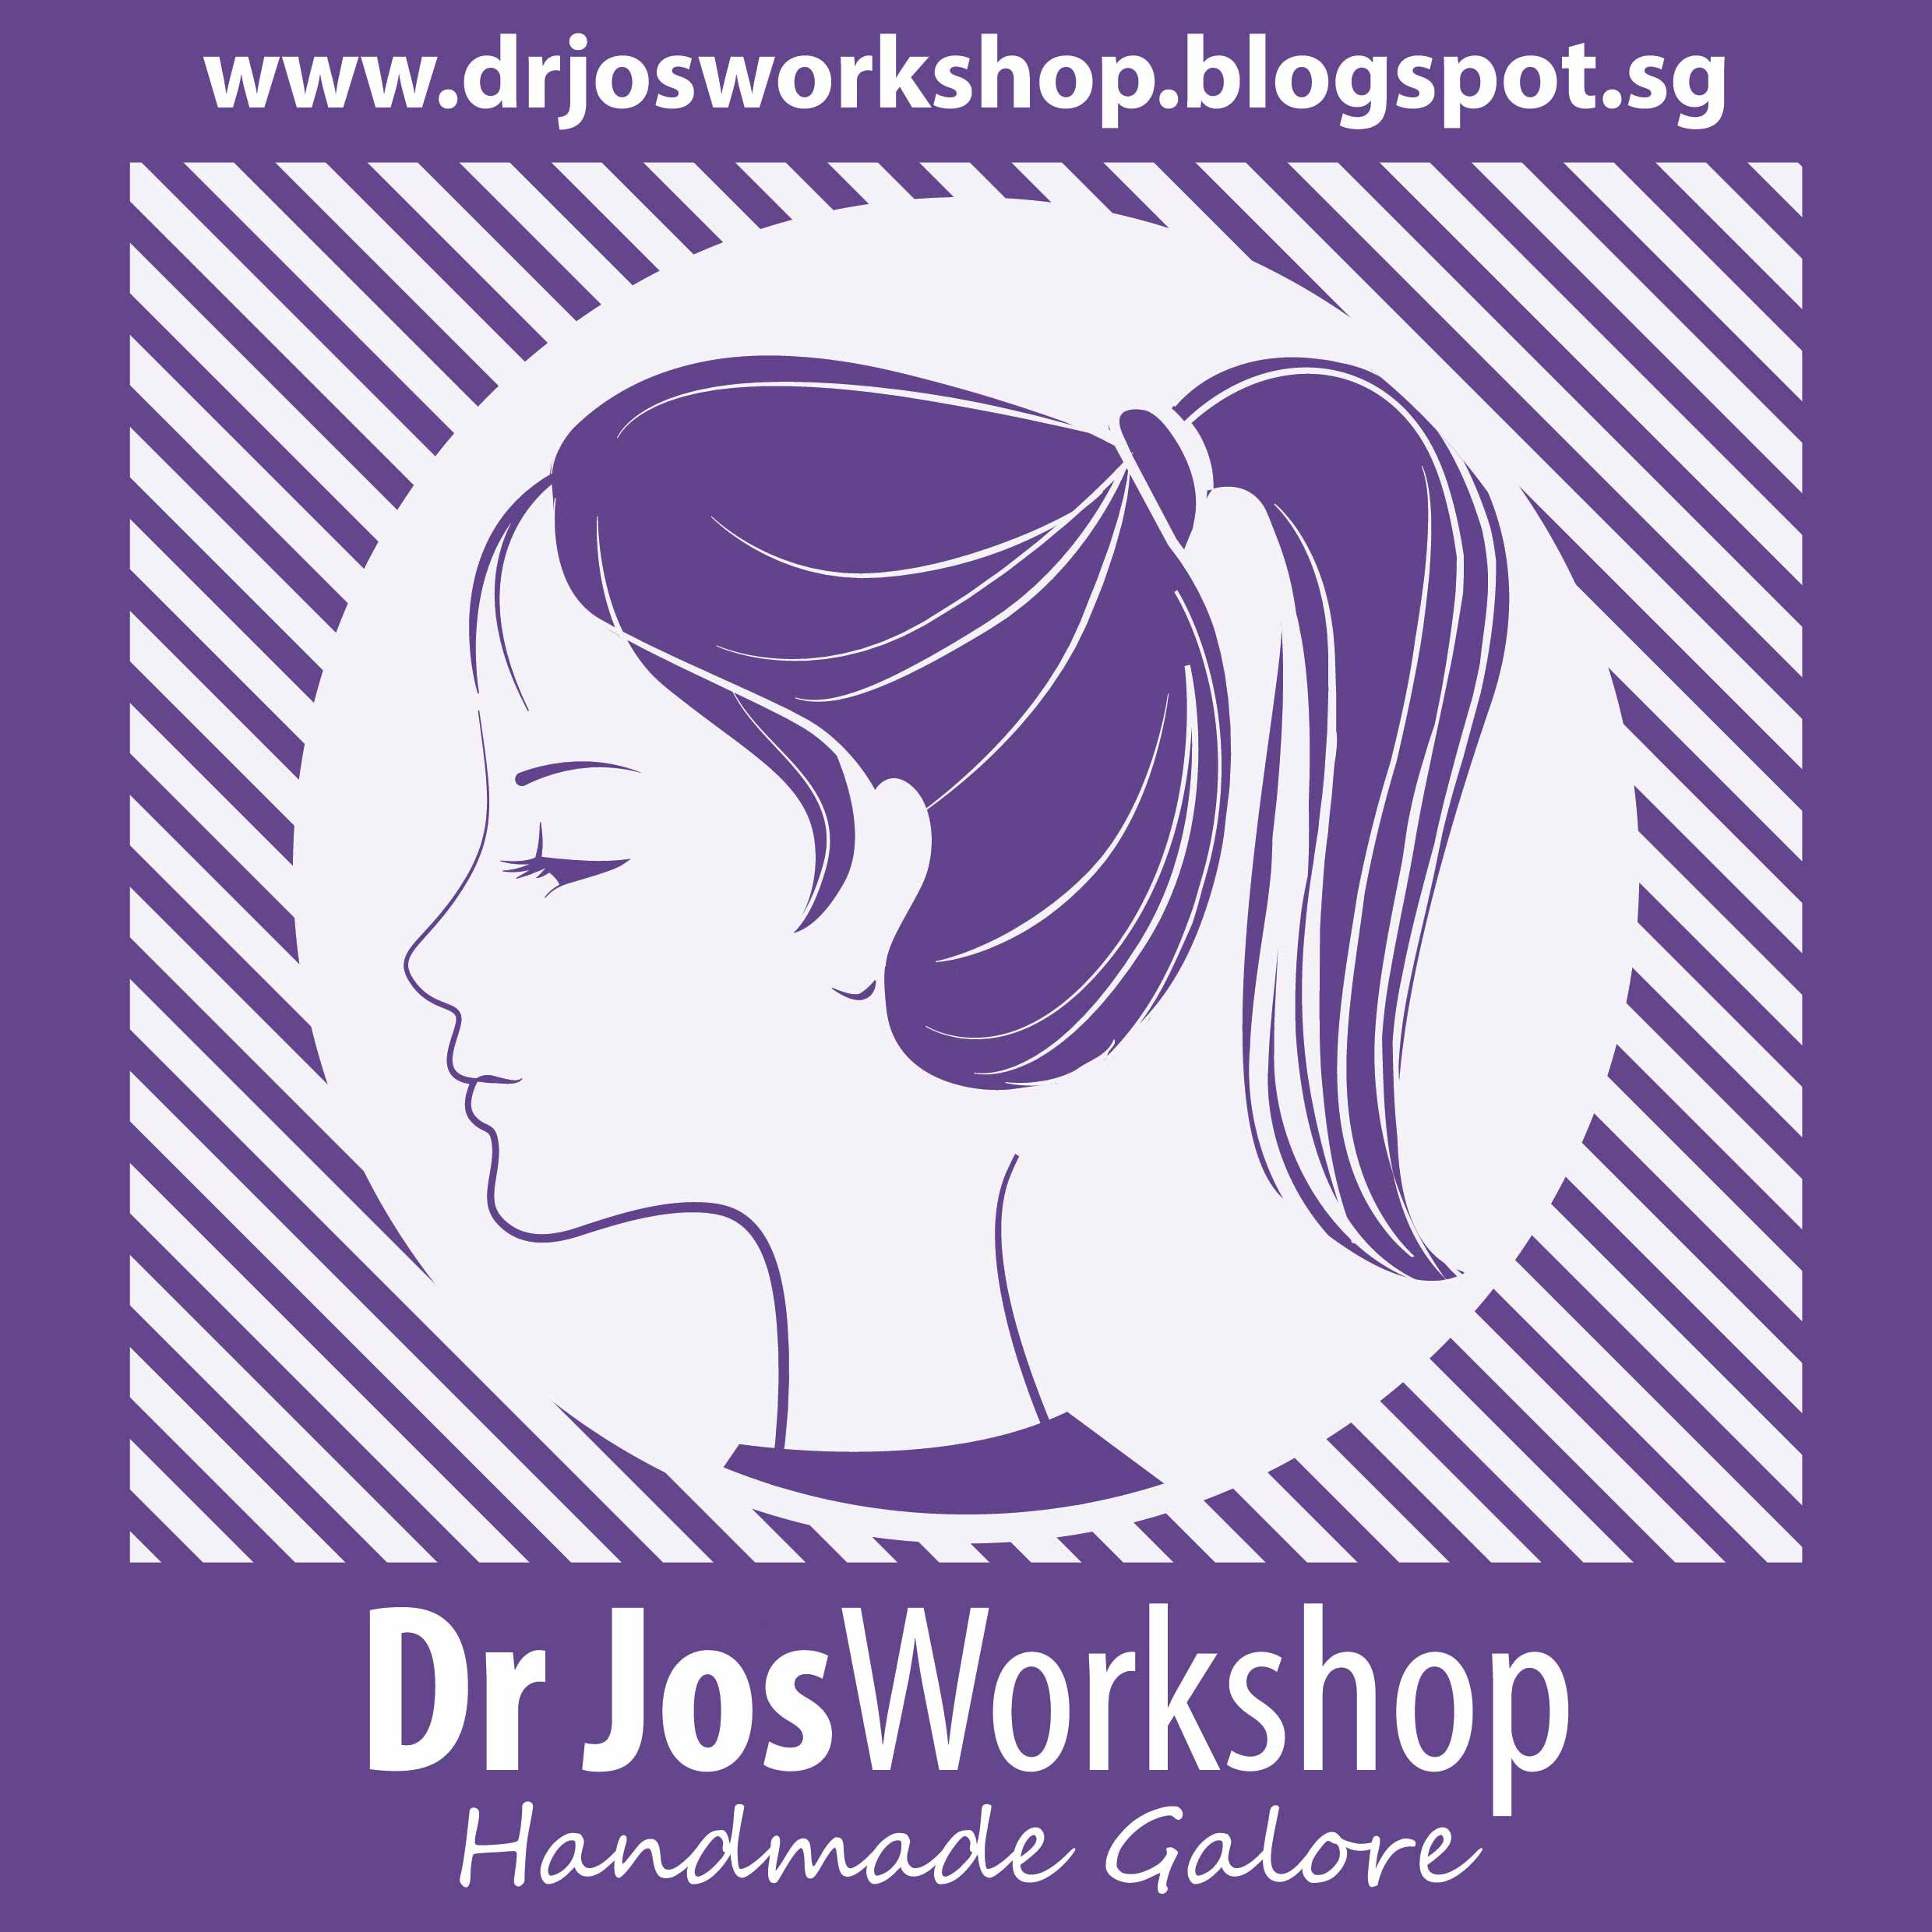 drjosworkshop